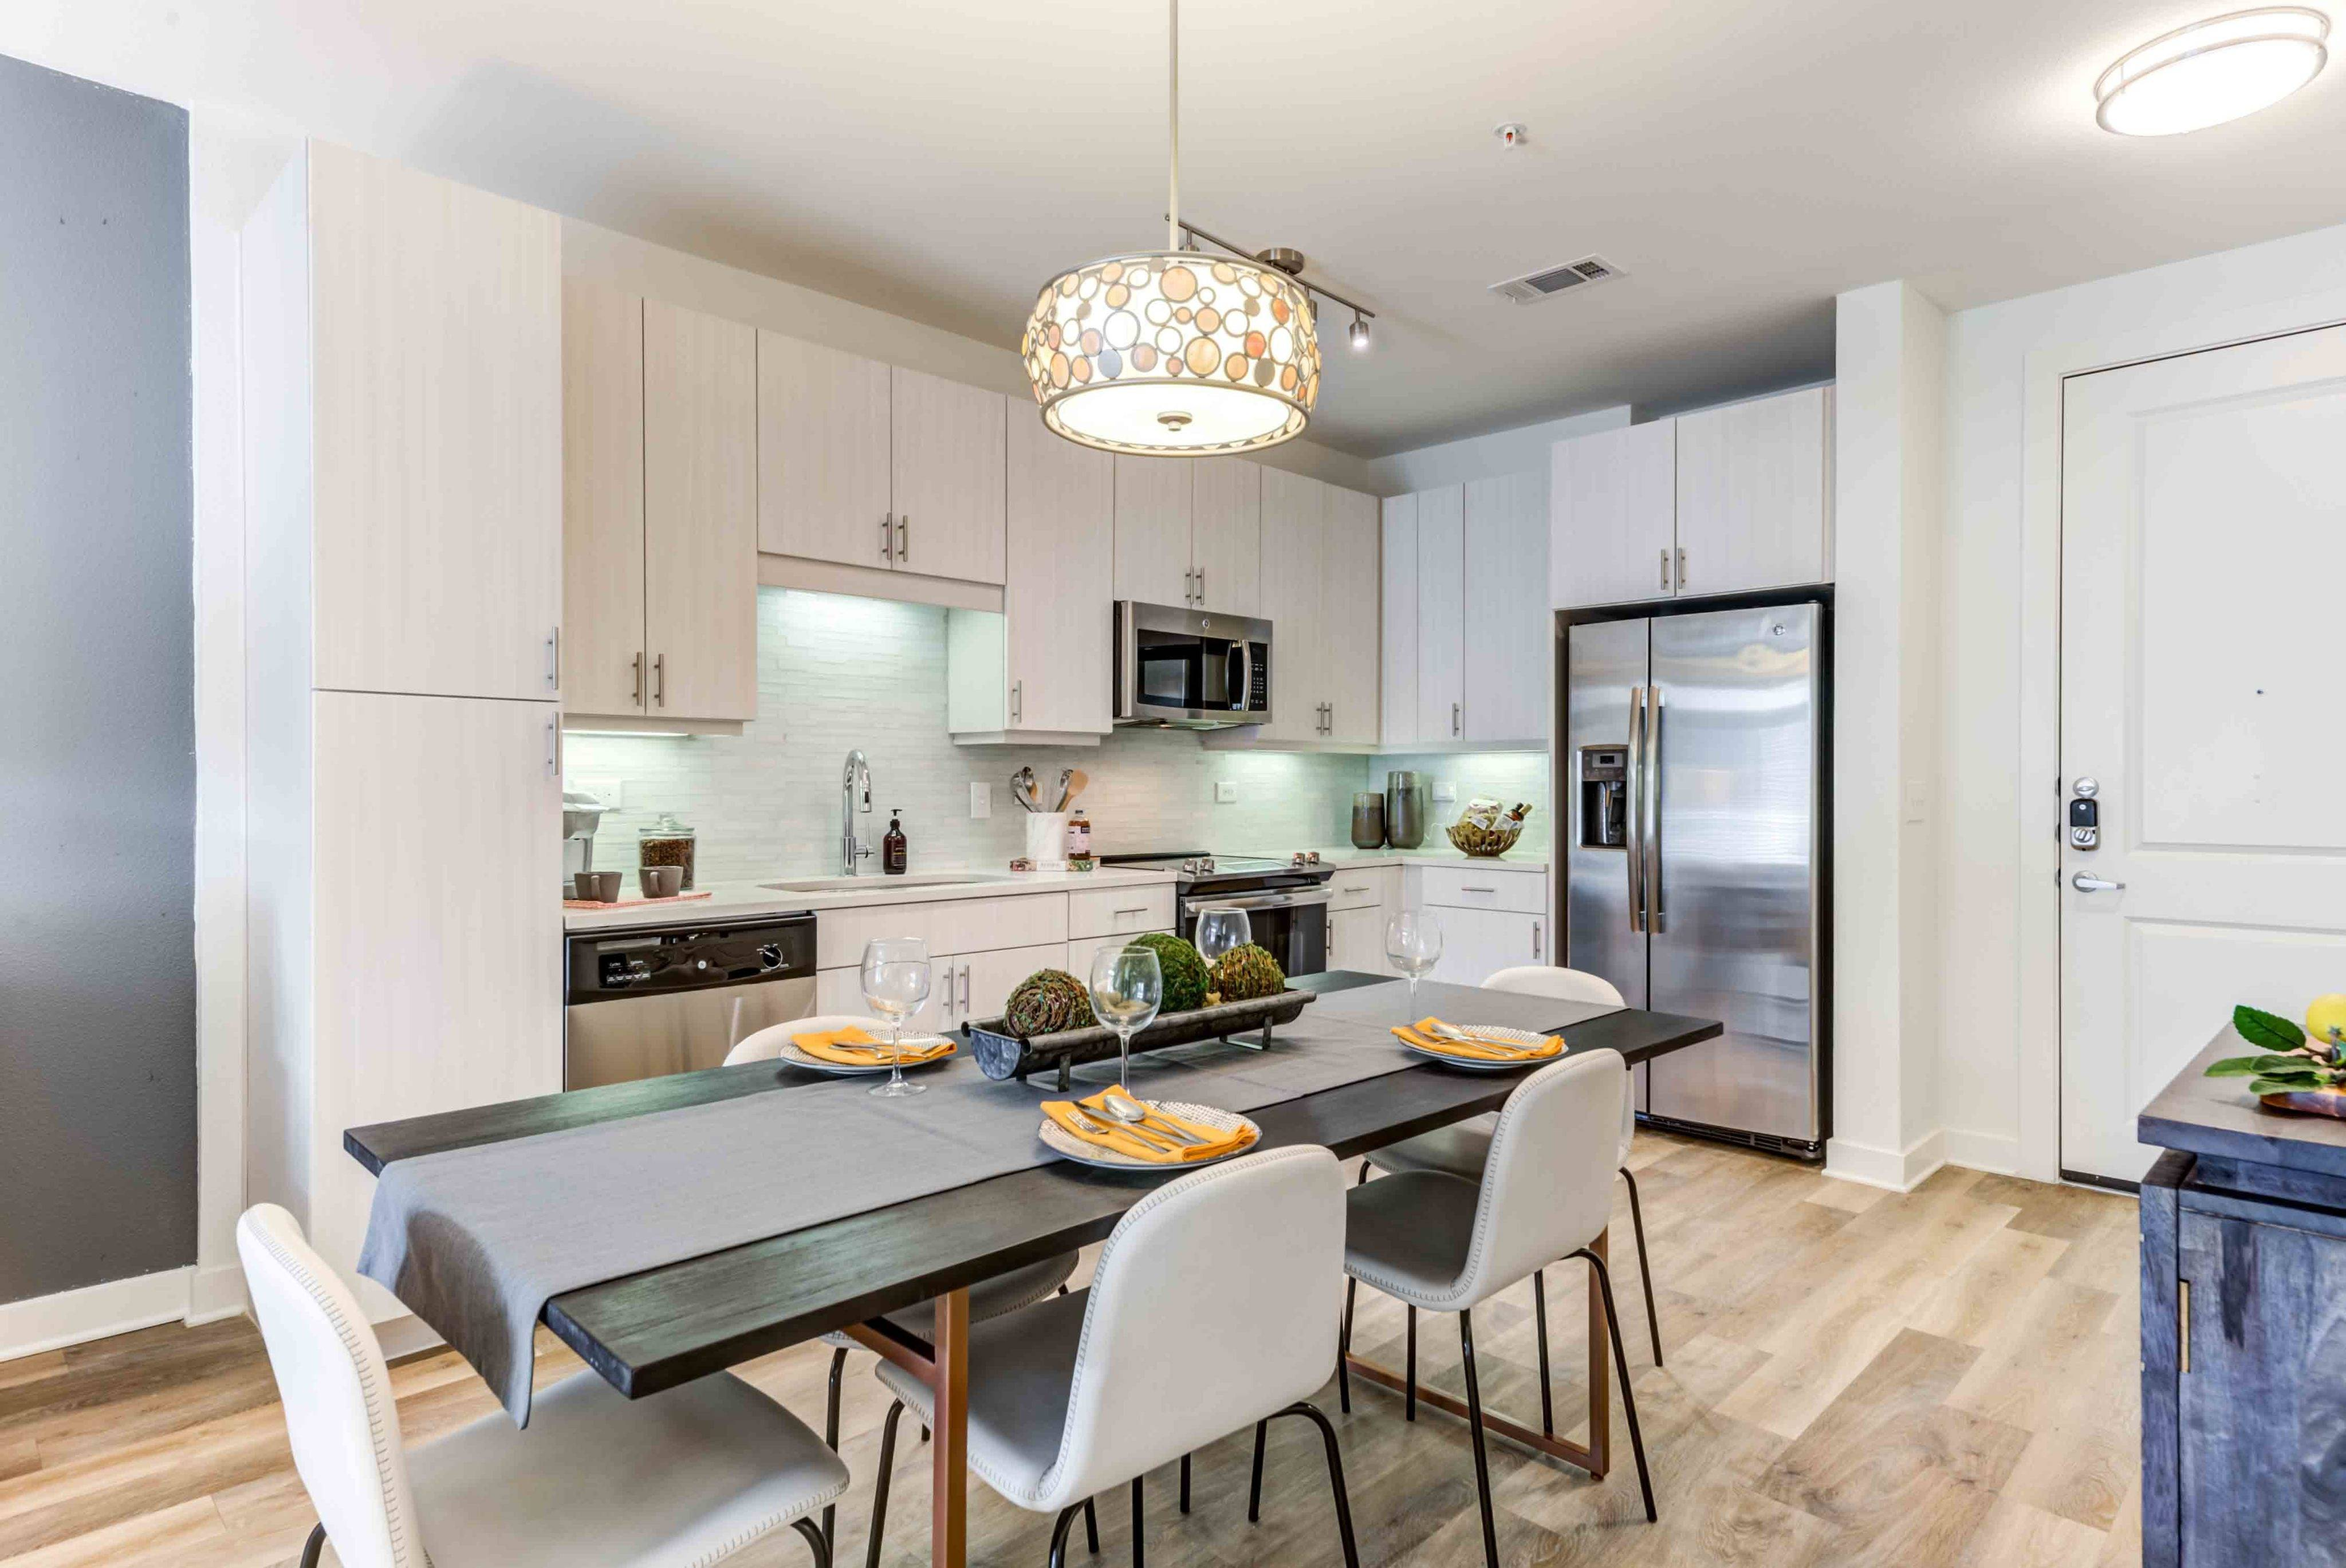 Stainless Steel GE Appliances